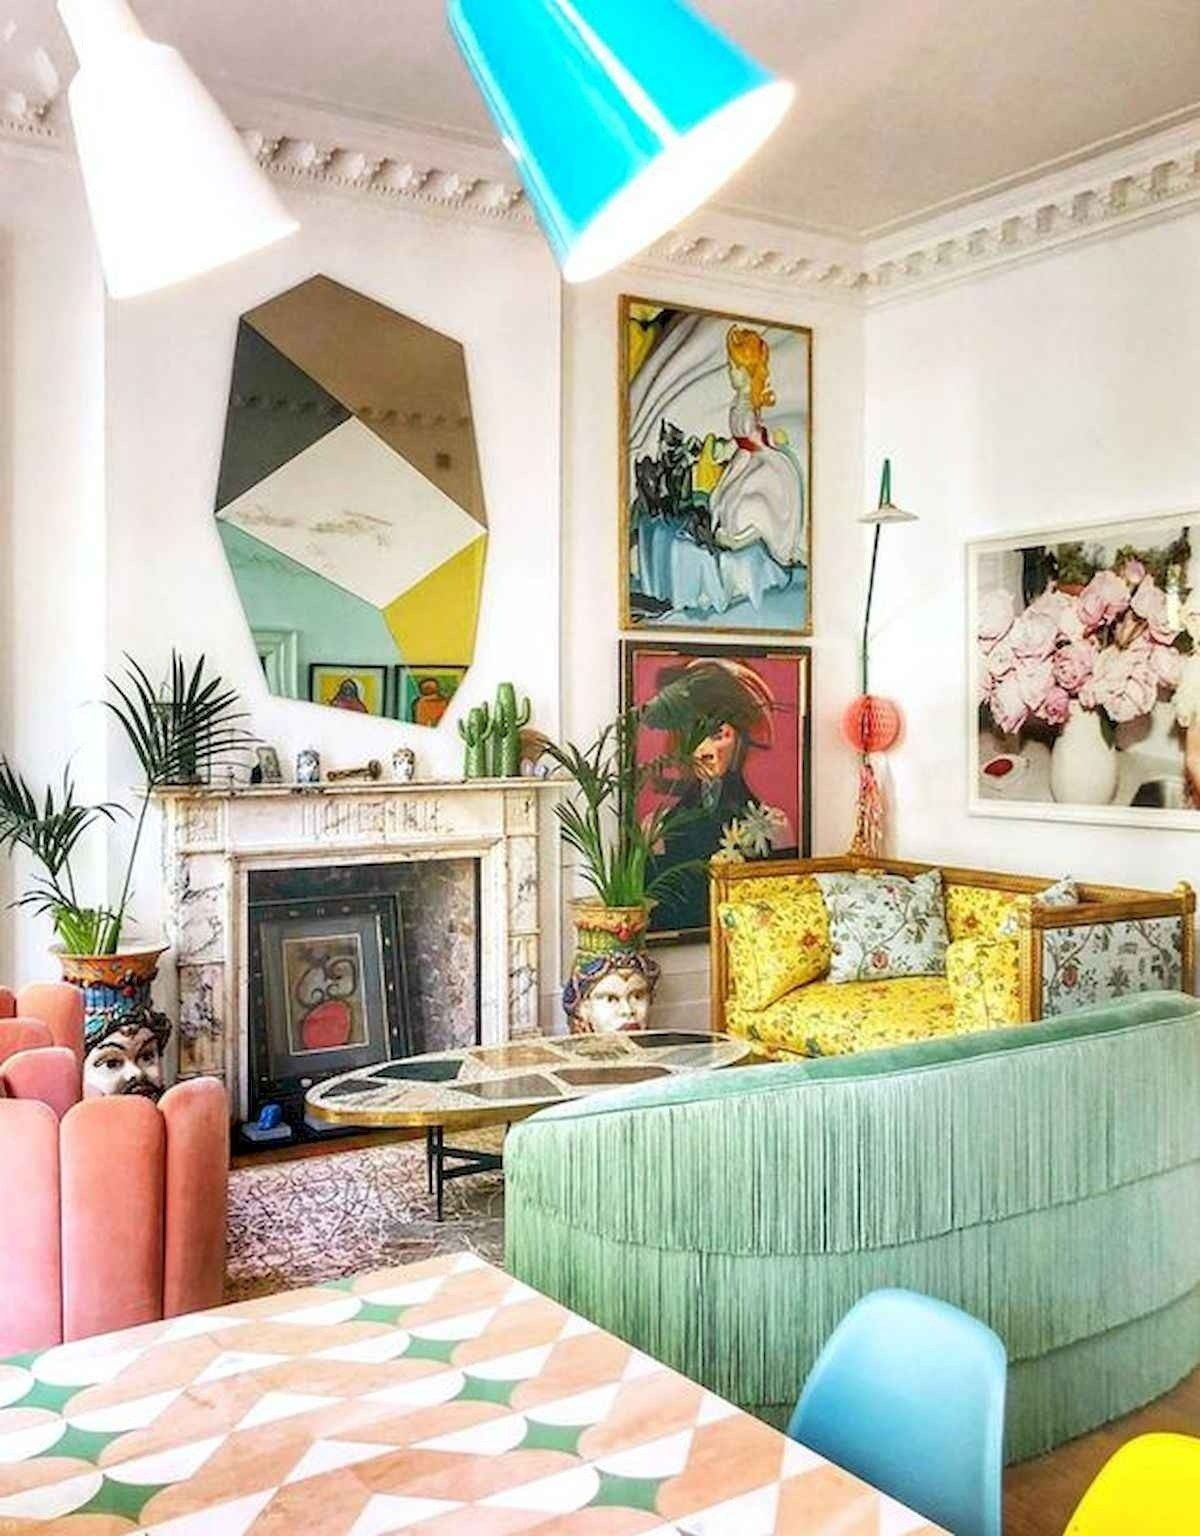 80 Stunning Colorful Living Room Decor Ideas And Remodel For Summer Project Colorful living room pics